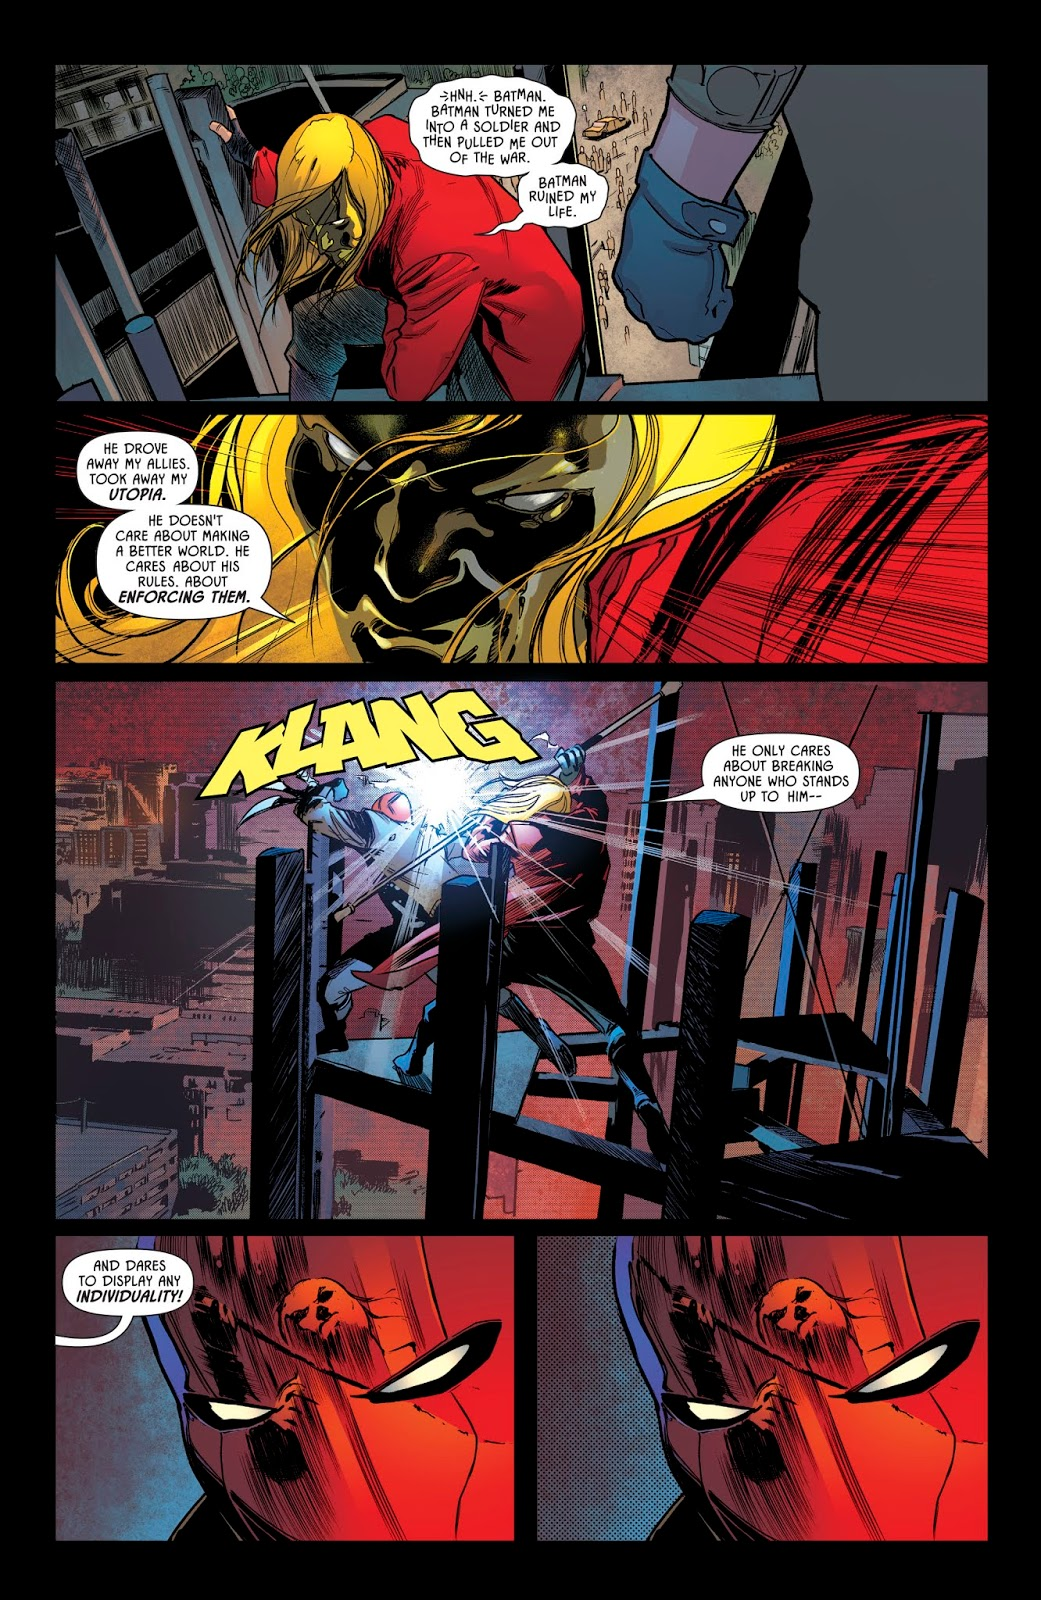 Red Hood VS Anarky (Batman Prelude To The Wedding)